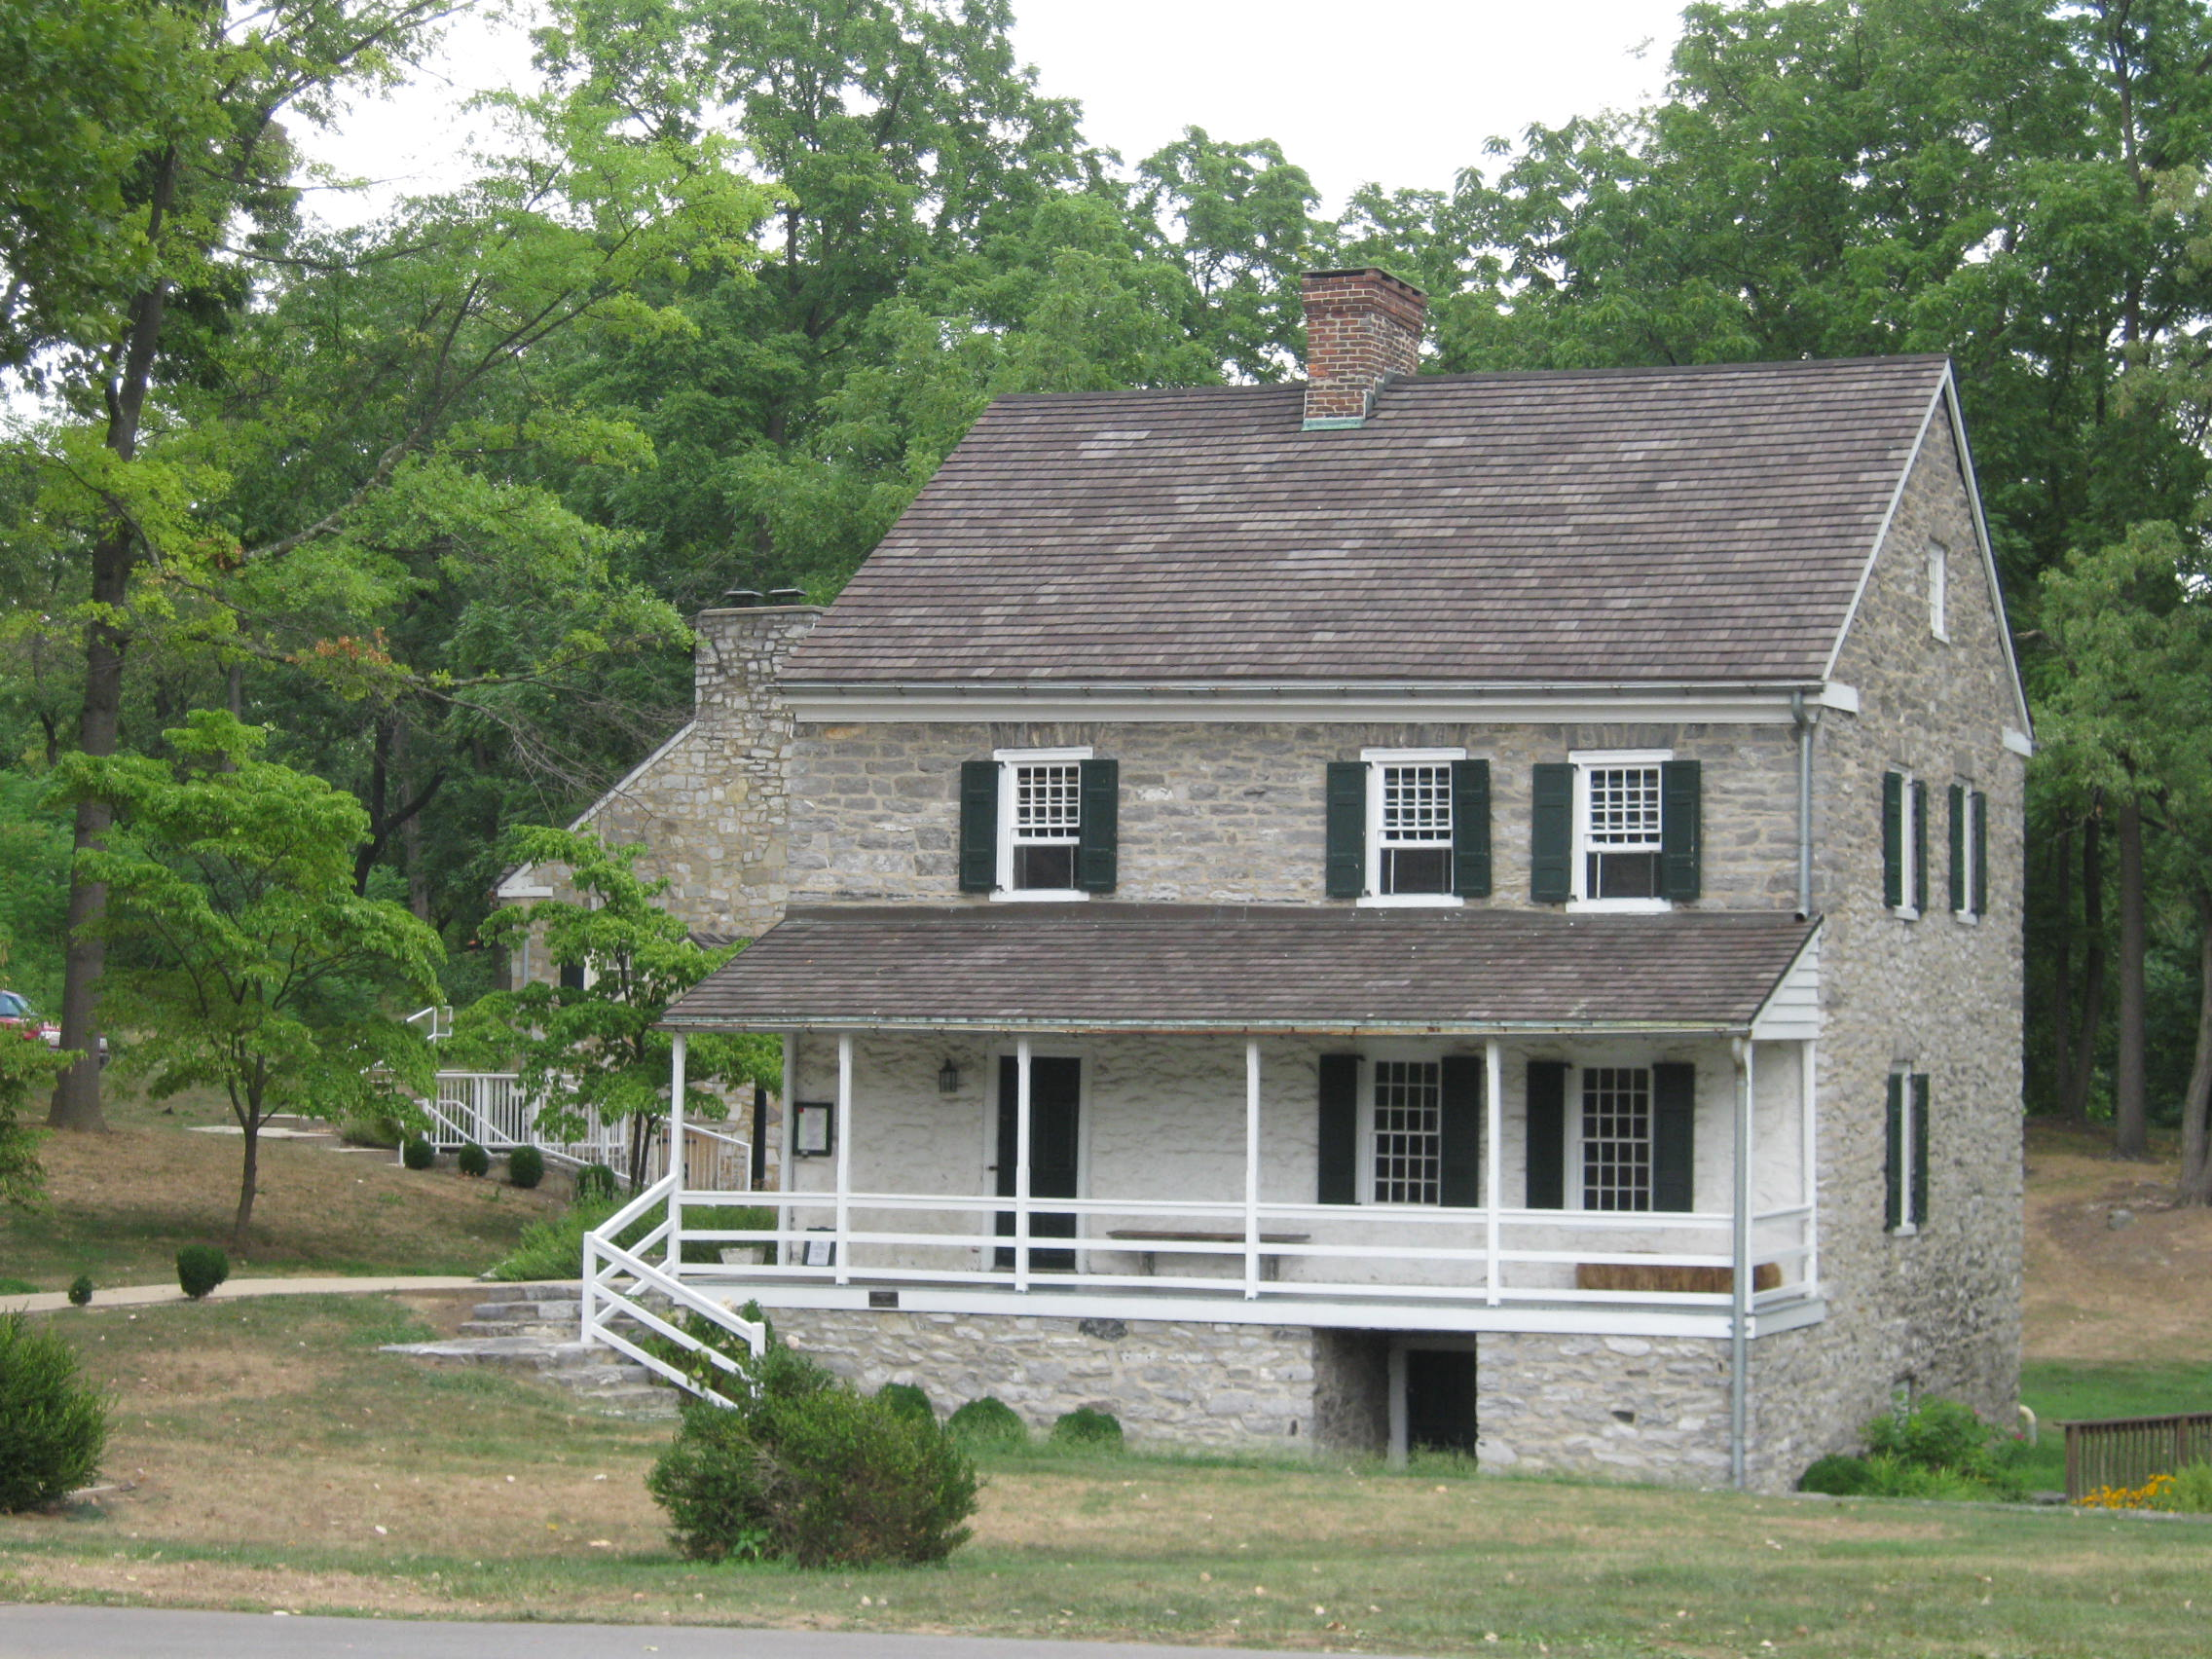 Built around 1740, the Hager House contains exhibits about life in the colonial period and early republic, complete with authentic furnishings from the period.